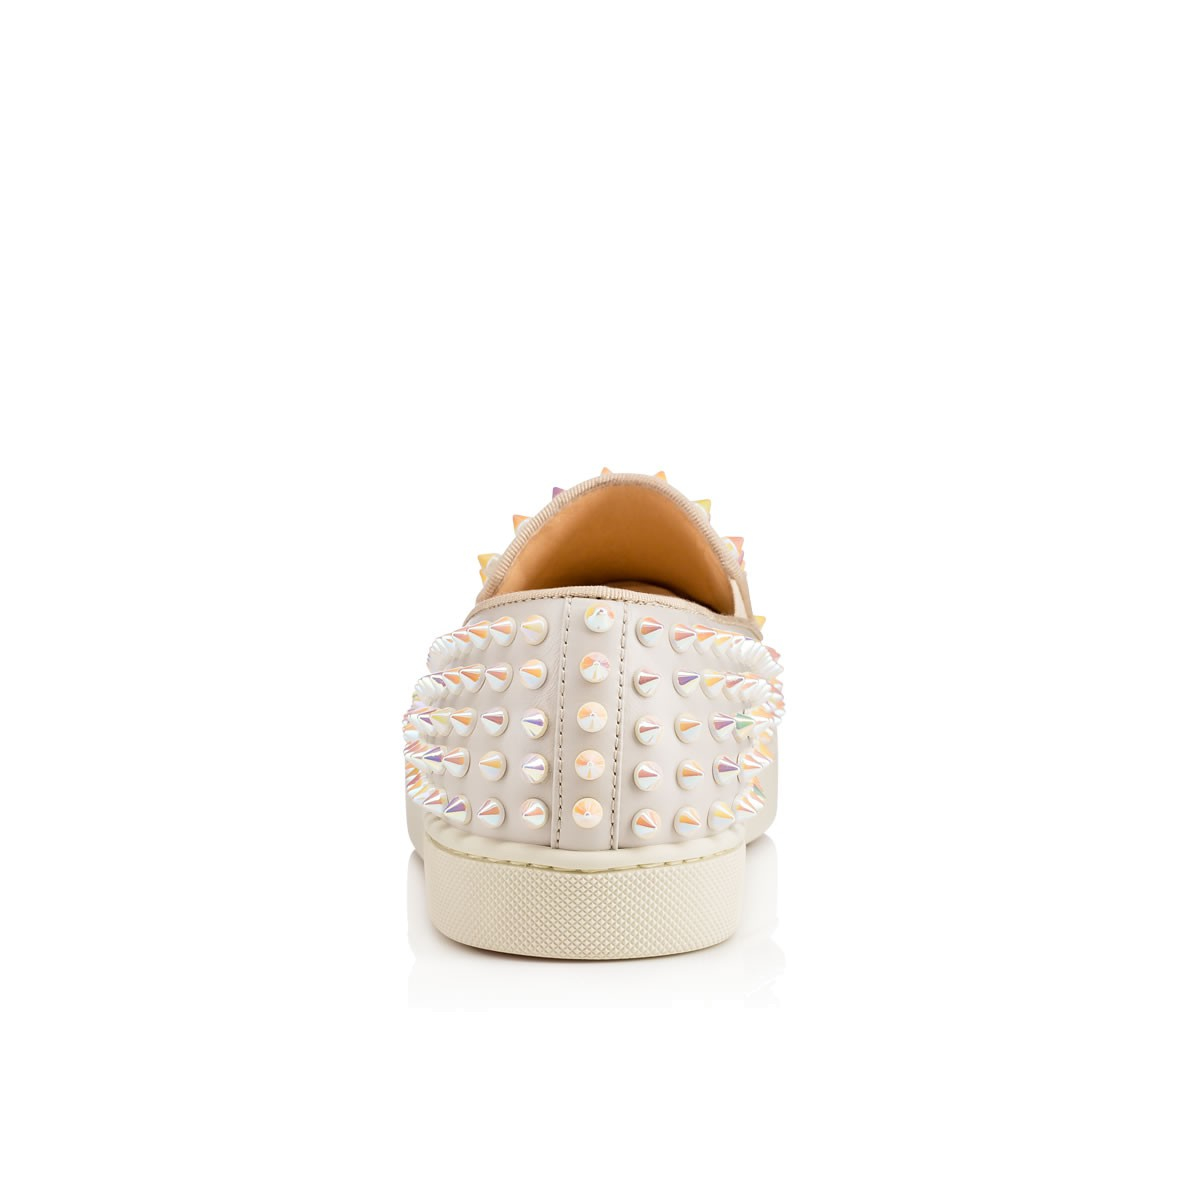 Lyst - Christian Louboutin Roller Boat Women s Flat in Natural a7fcd6f27